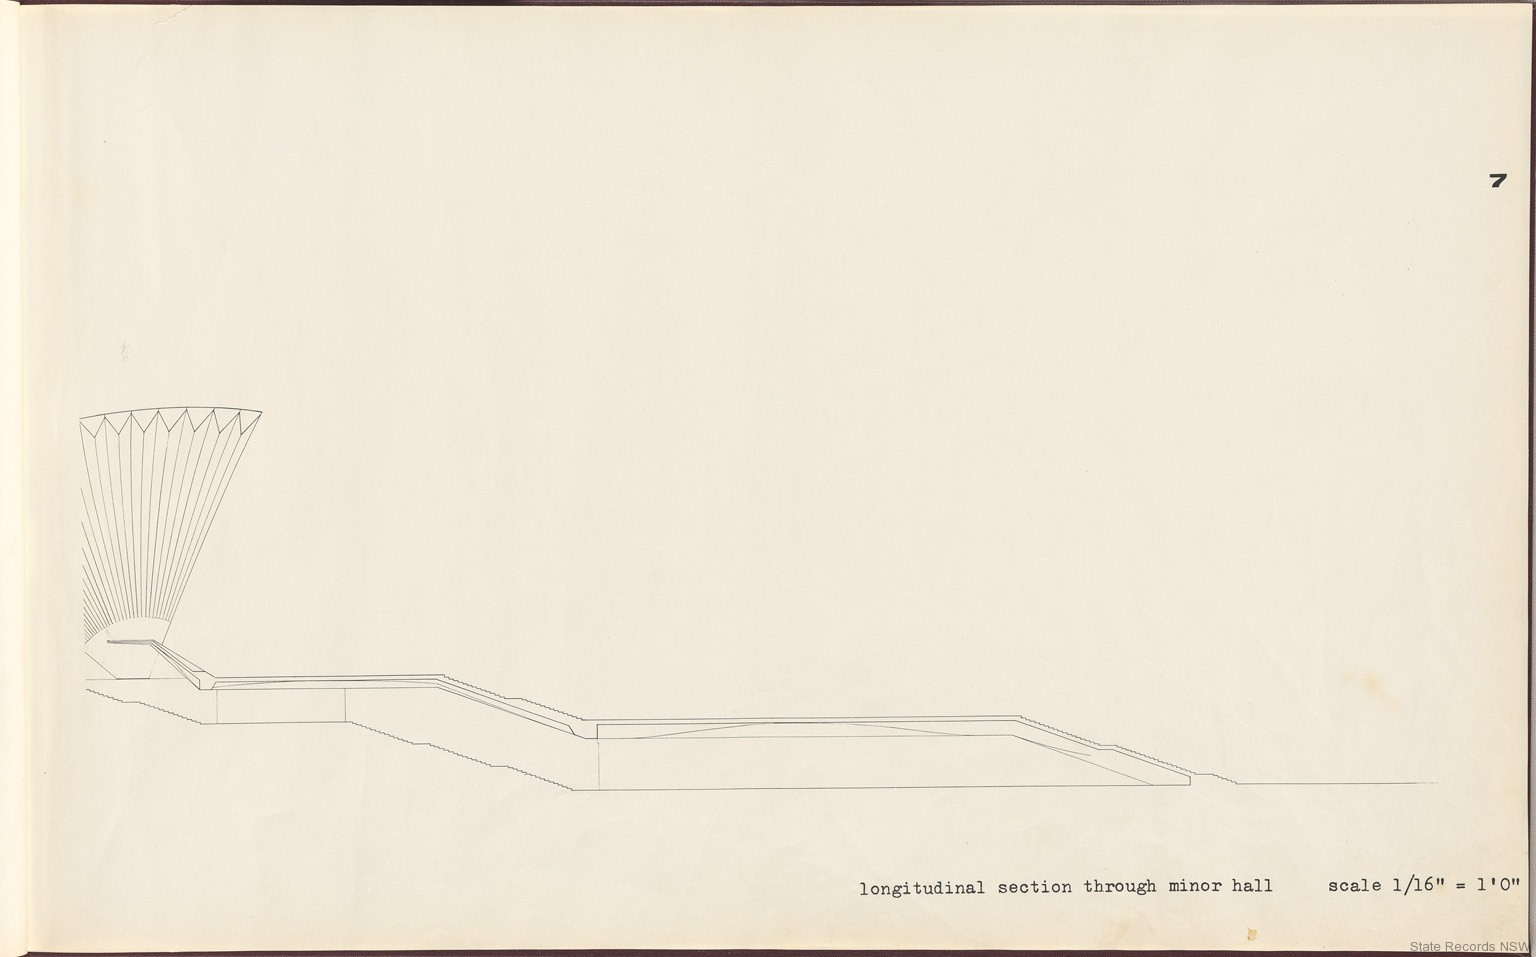 7. Longitudinal section through minor hall. Sydney Opera House - Yellow Book. NRS 12708